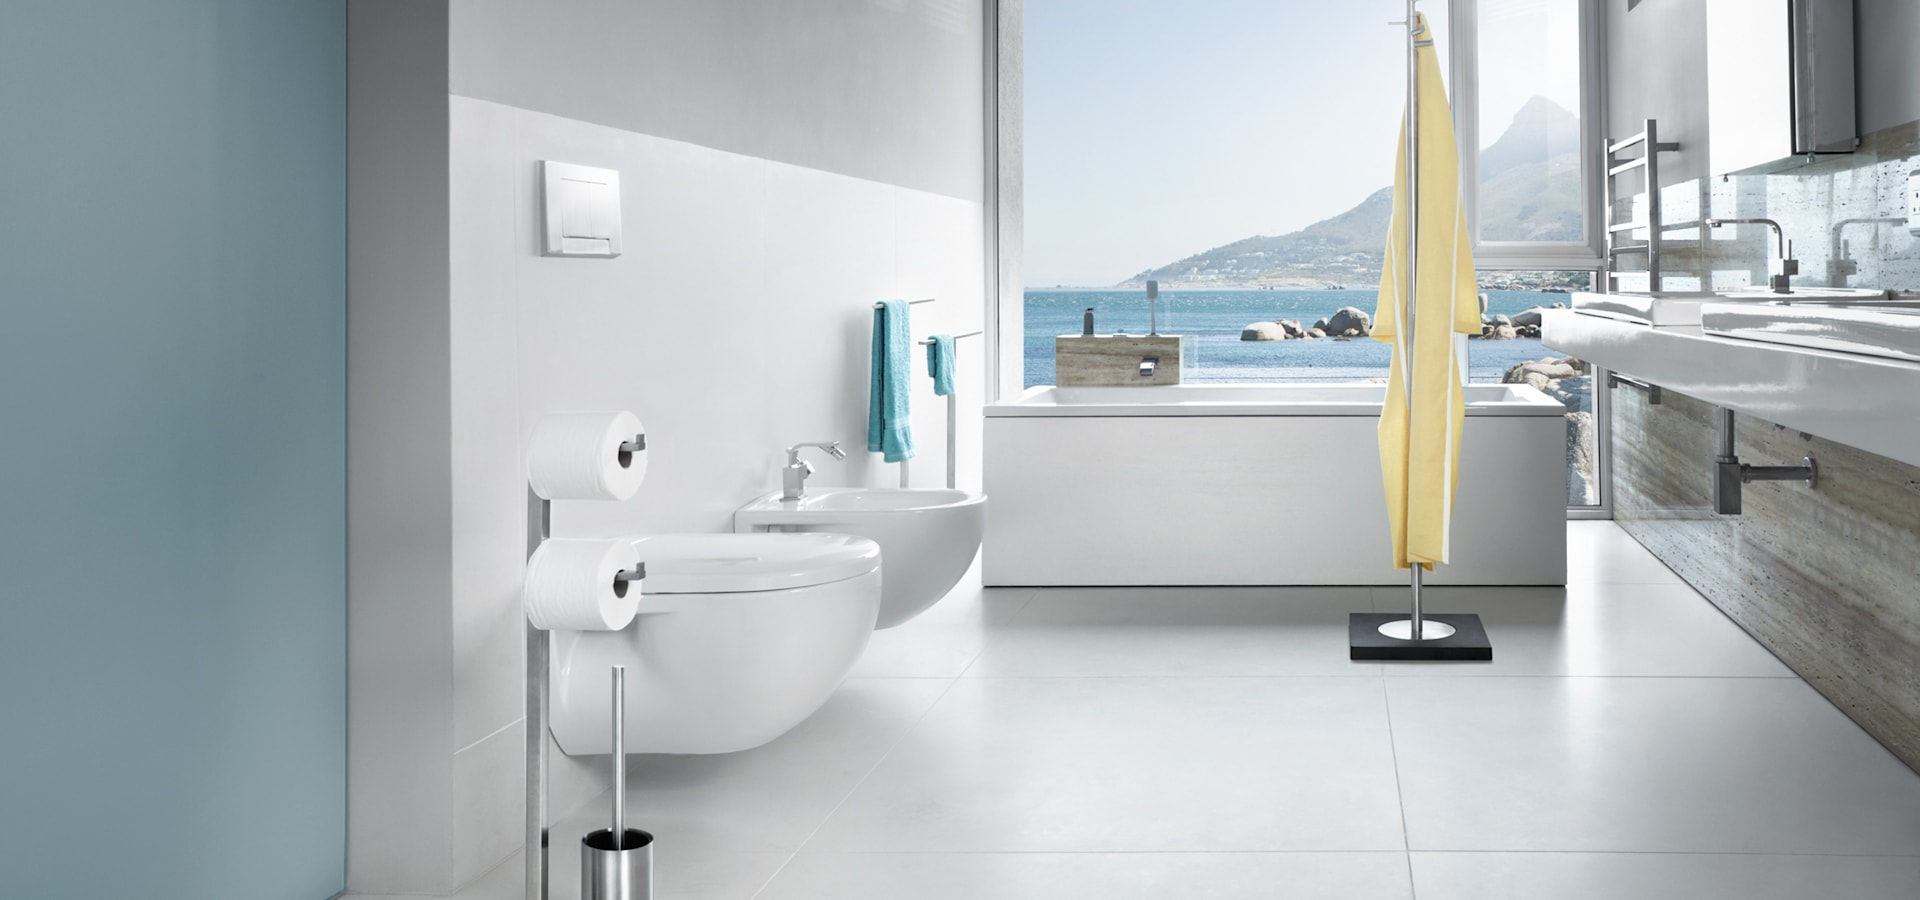 Salle de bains d bathroom designers in paris homify for Decoration salle bain